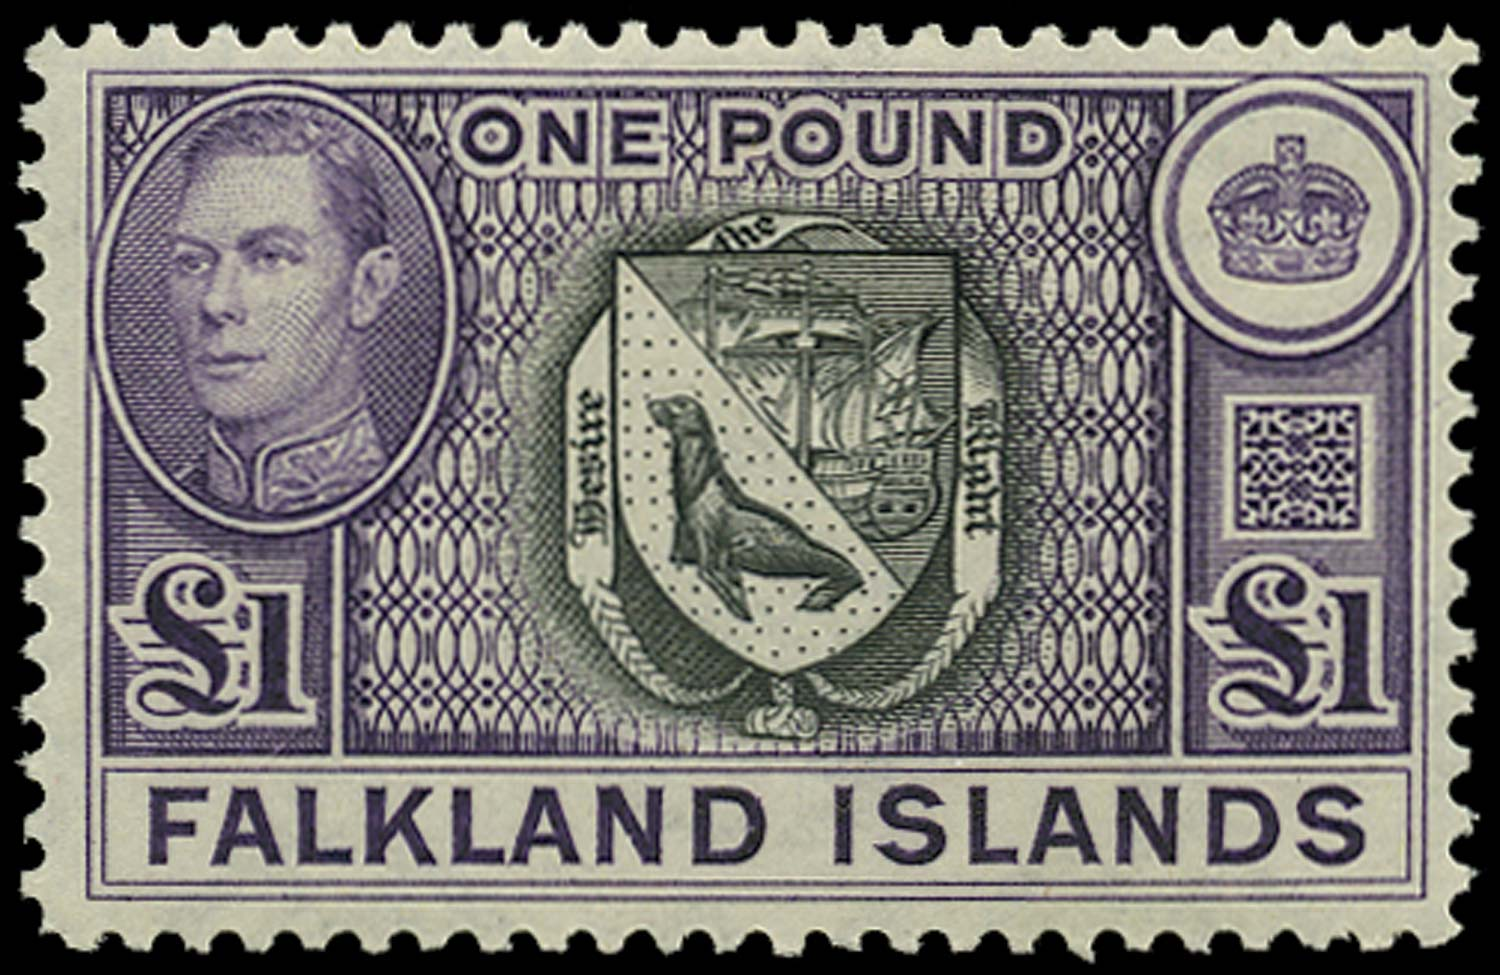 FALKLAND ISLANDS 1938  SG163 var Mint £1 black and violet 1949 fourth printing